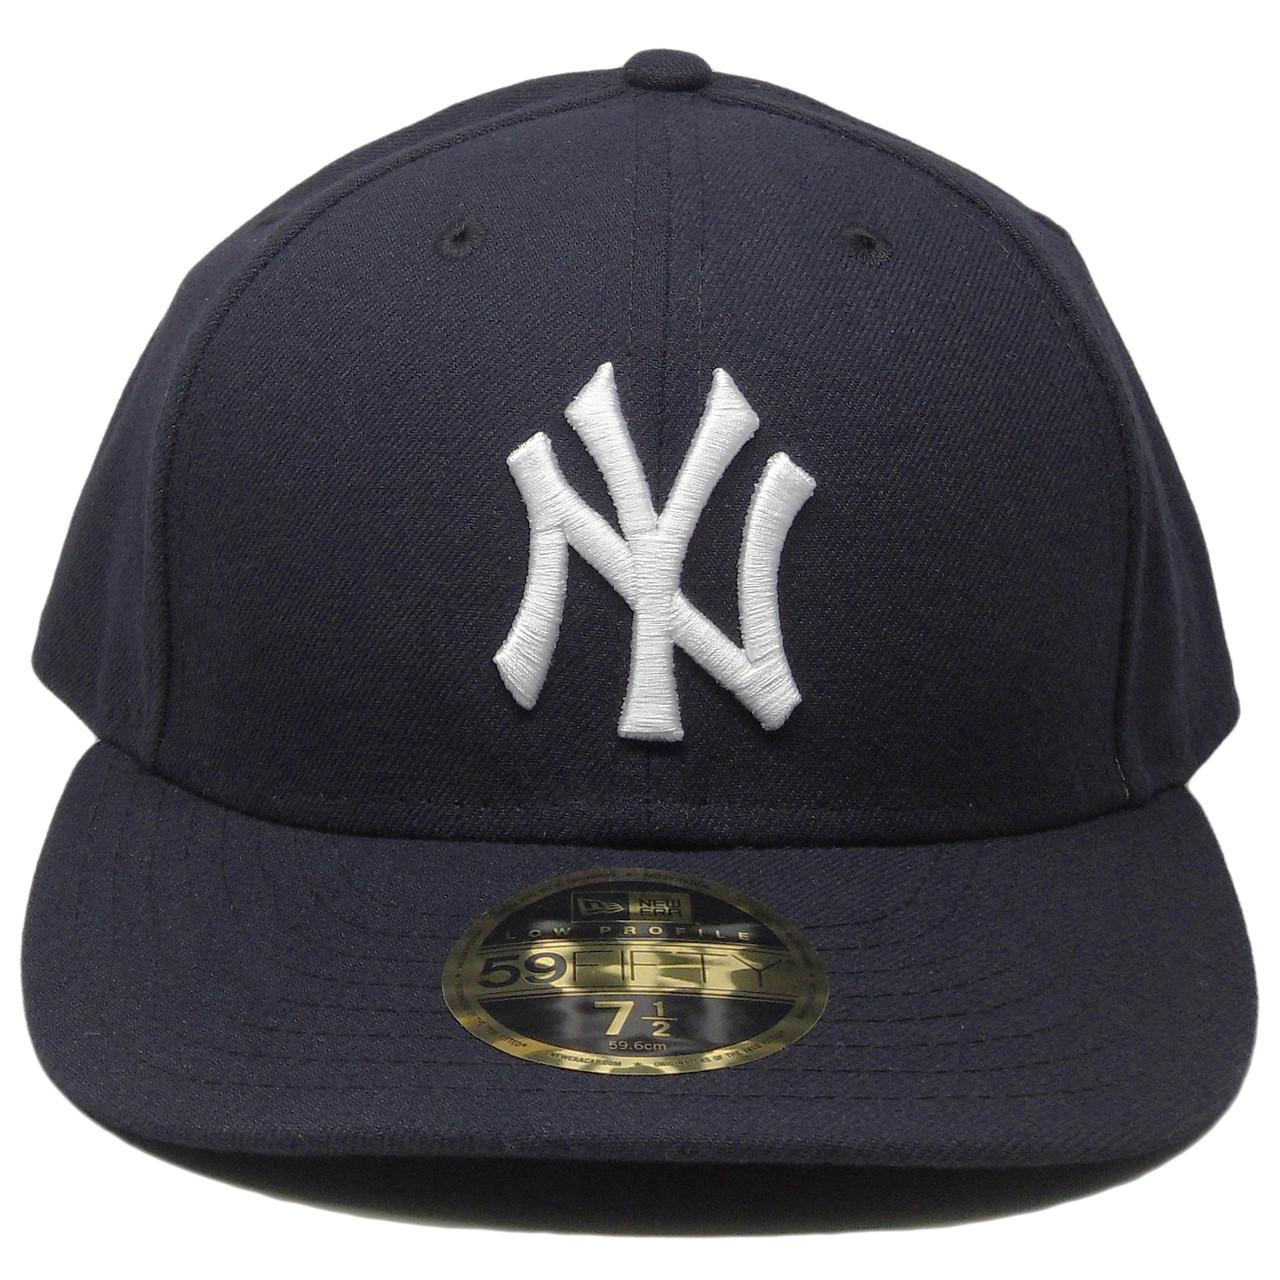 fb9c3368772 New York Yankees New Era 59Fifty Low Profile Fitted Hat - Navy ...